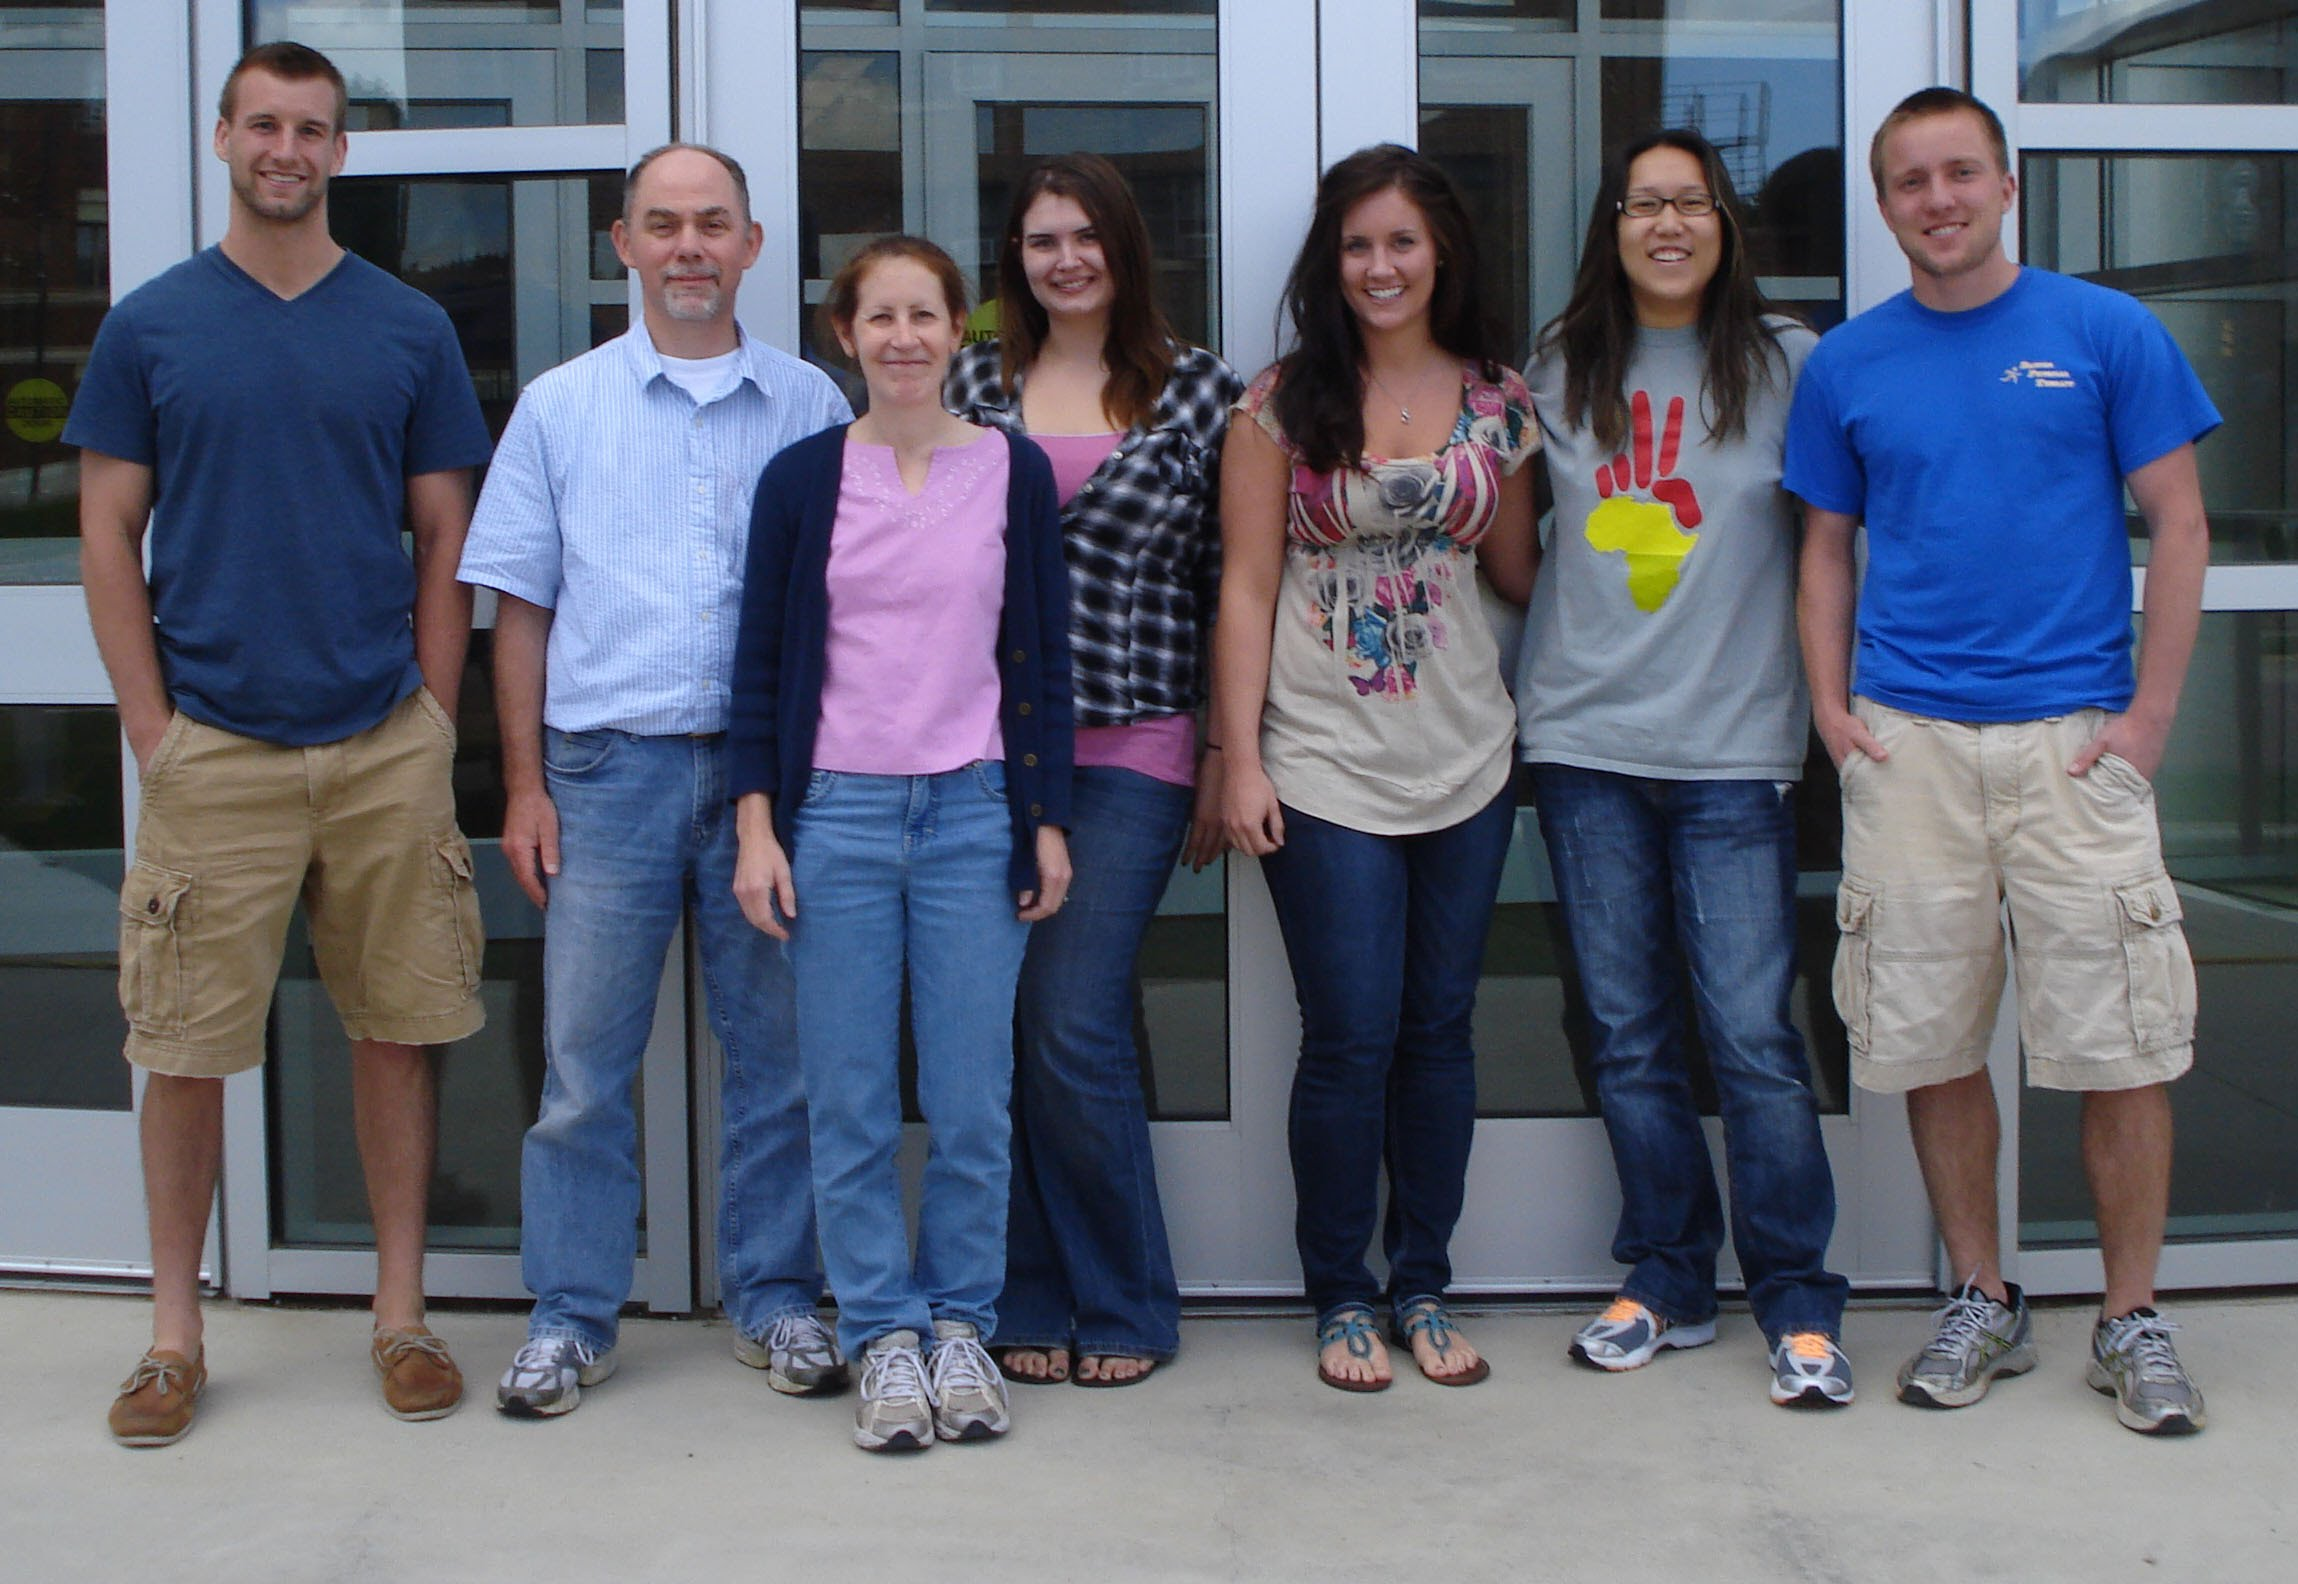 Burrell/Moss Lab 2011: From left to right are Jeb List, Brian Burrell, Brenda Moss, Torrie Rasmussen, Ally VanderWeide, Sharleen Yuan and Eric Christianson.